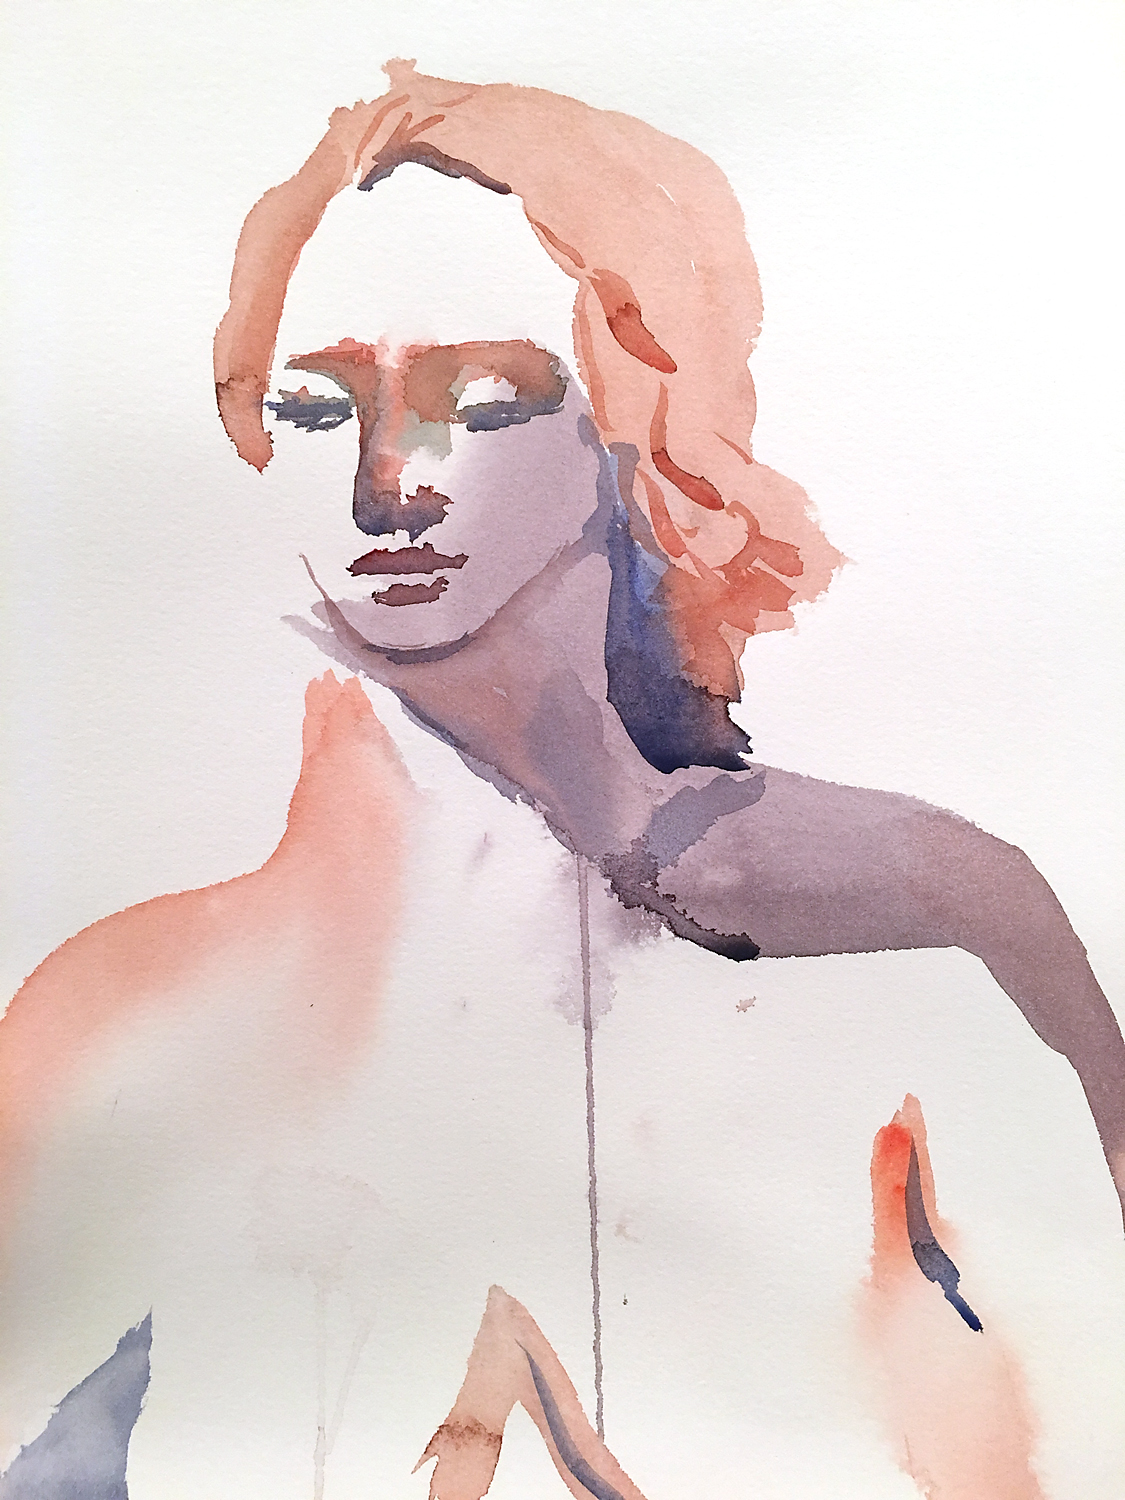 Helen-Watercolor-on-paper-by-Indira-Cesarine-001.jpg